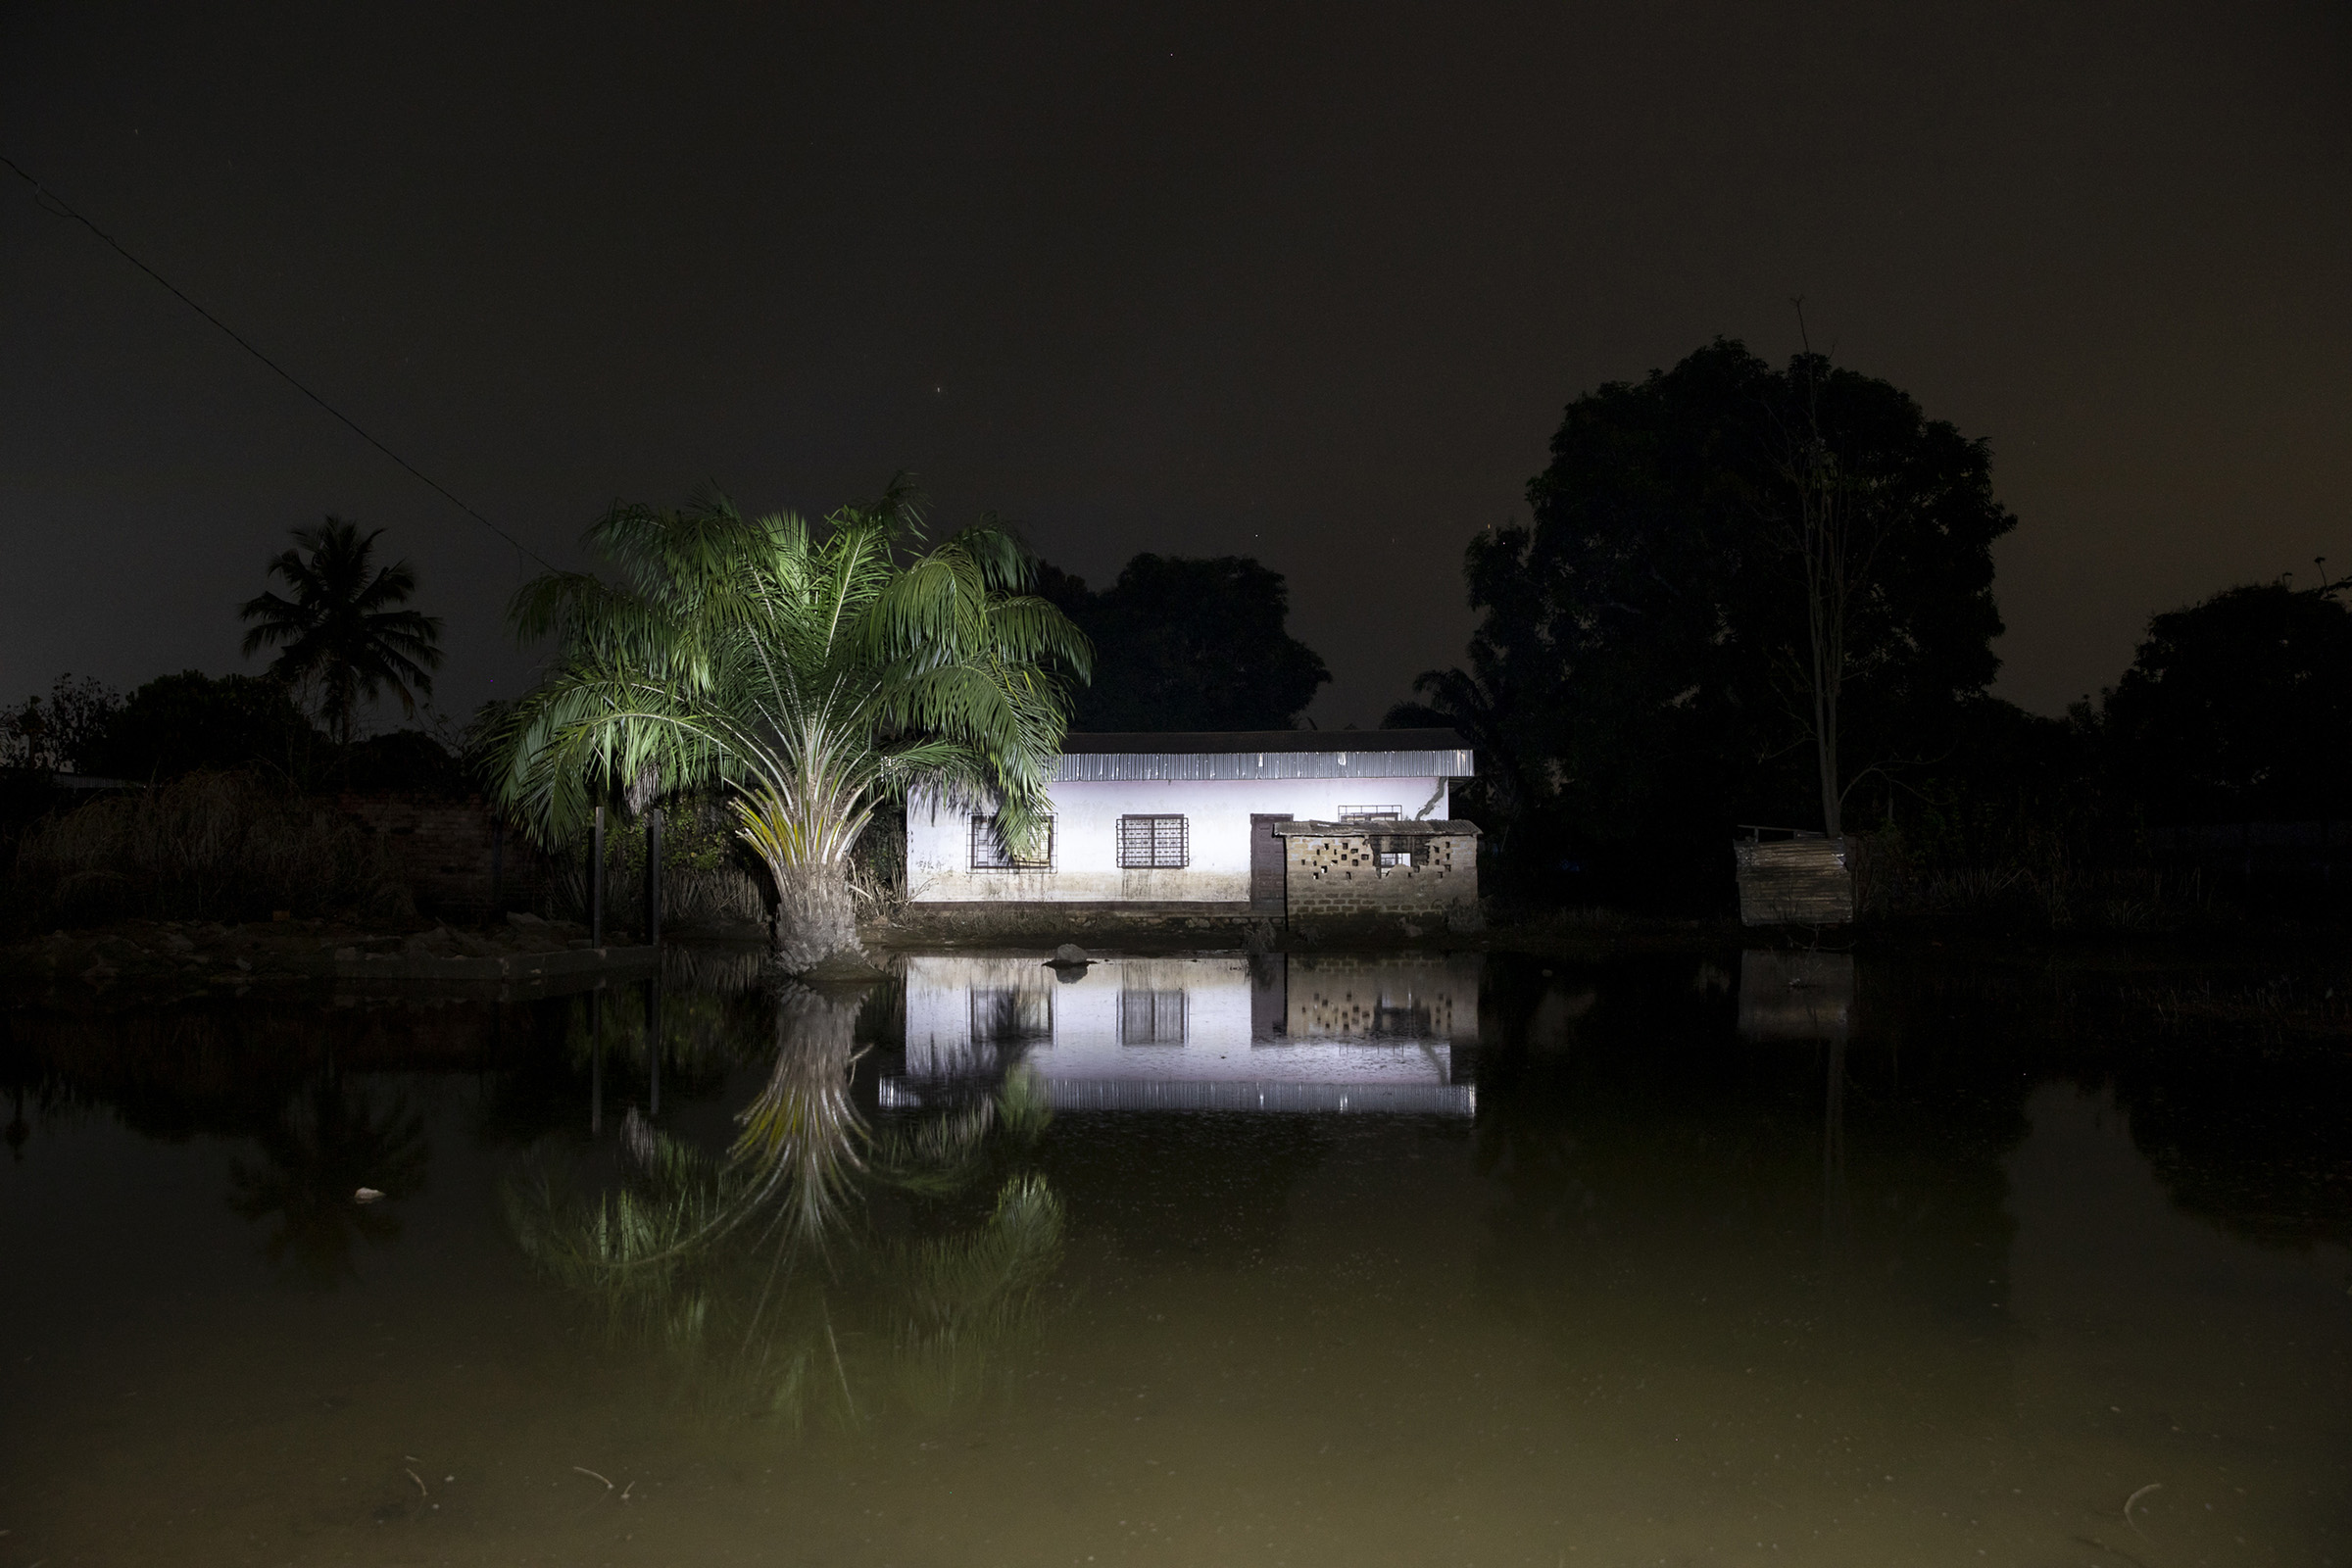 A house is seen at night in a flooded neighbourhood of Bangui, capital of the Central African Republic, on Nov. 22, 2019 during a night patrol.